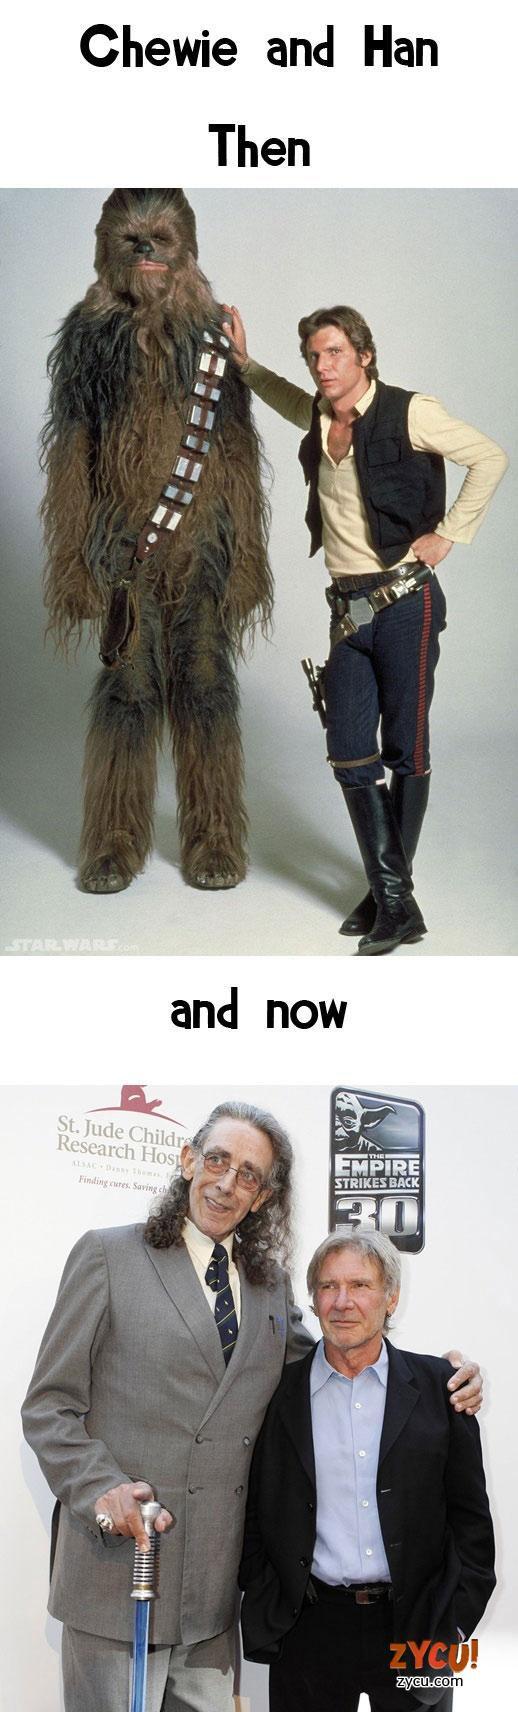 Chewie and Han, Then and Now